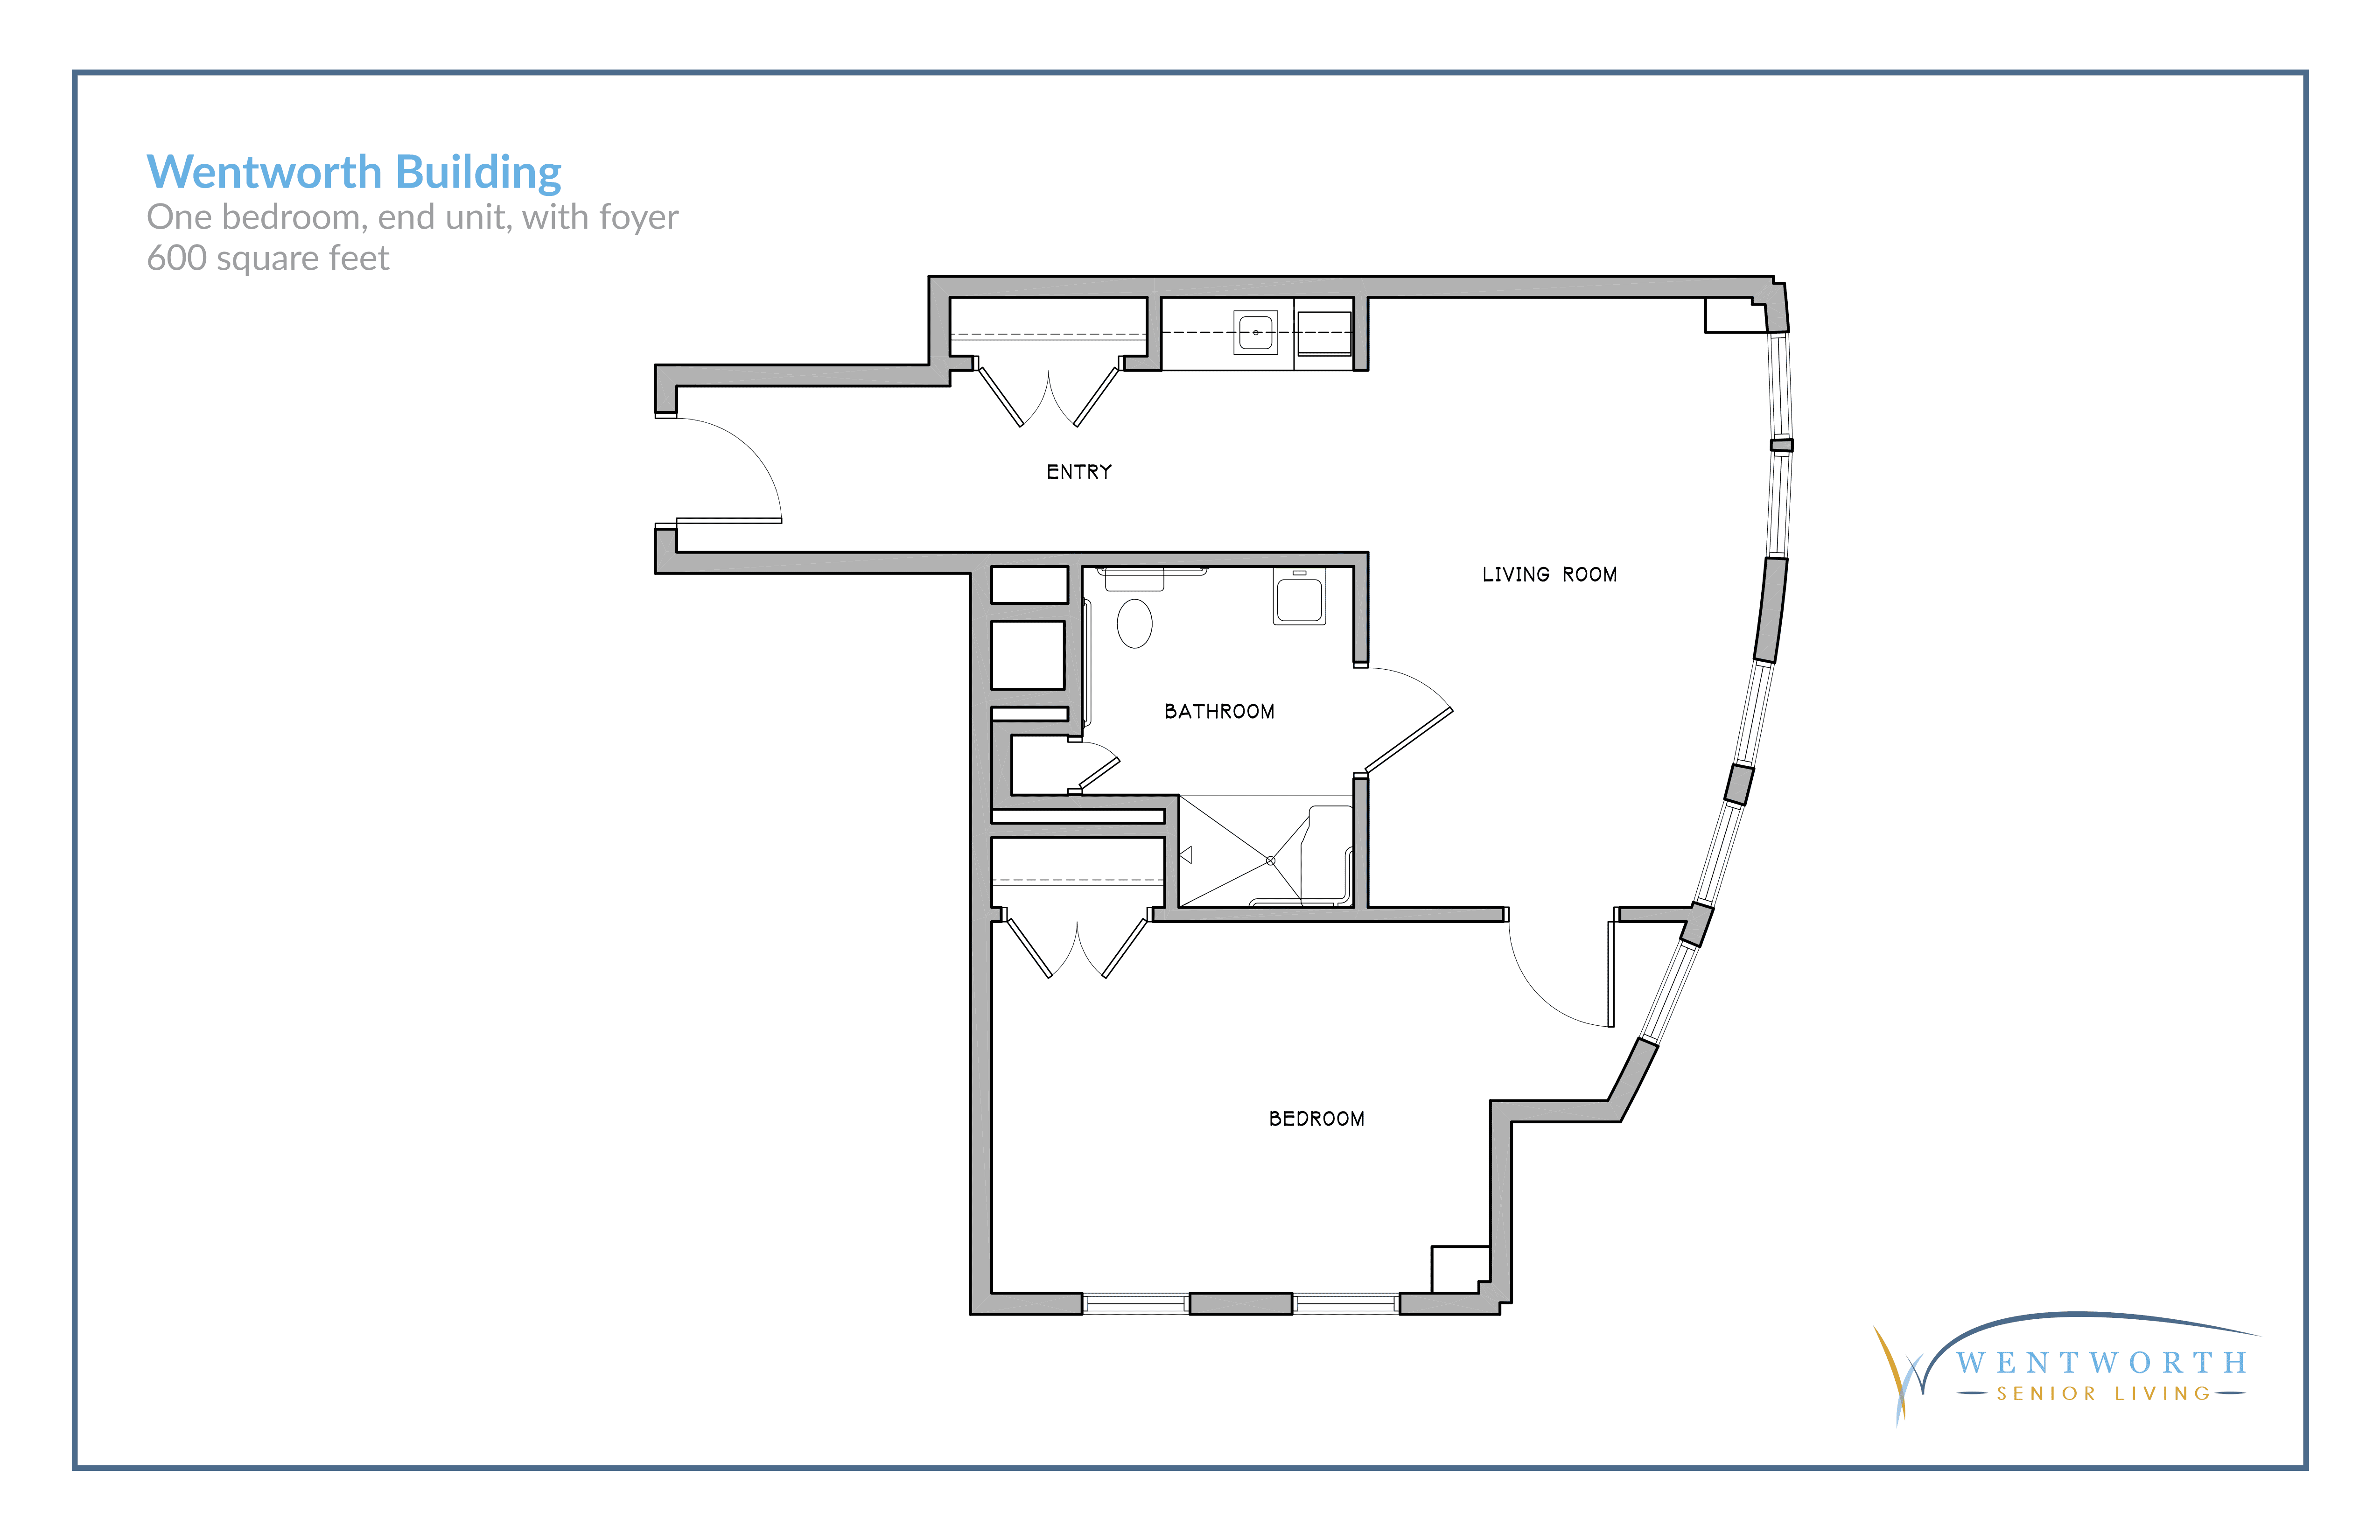 Floor plan for a one bedroom unit with a foyer.